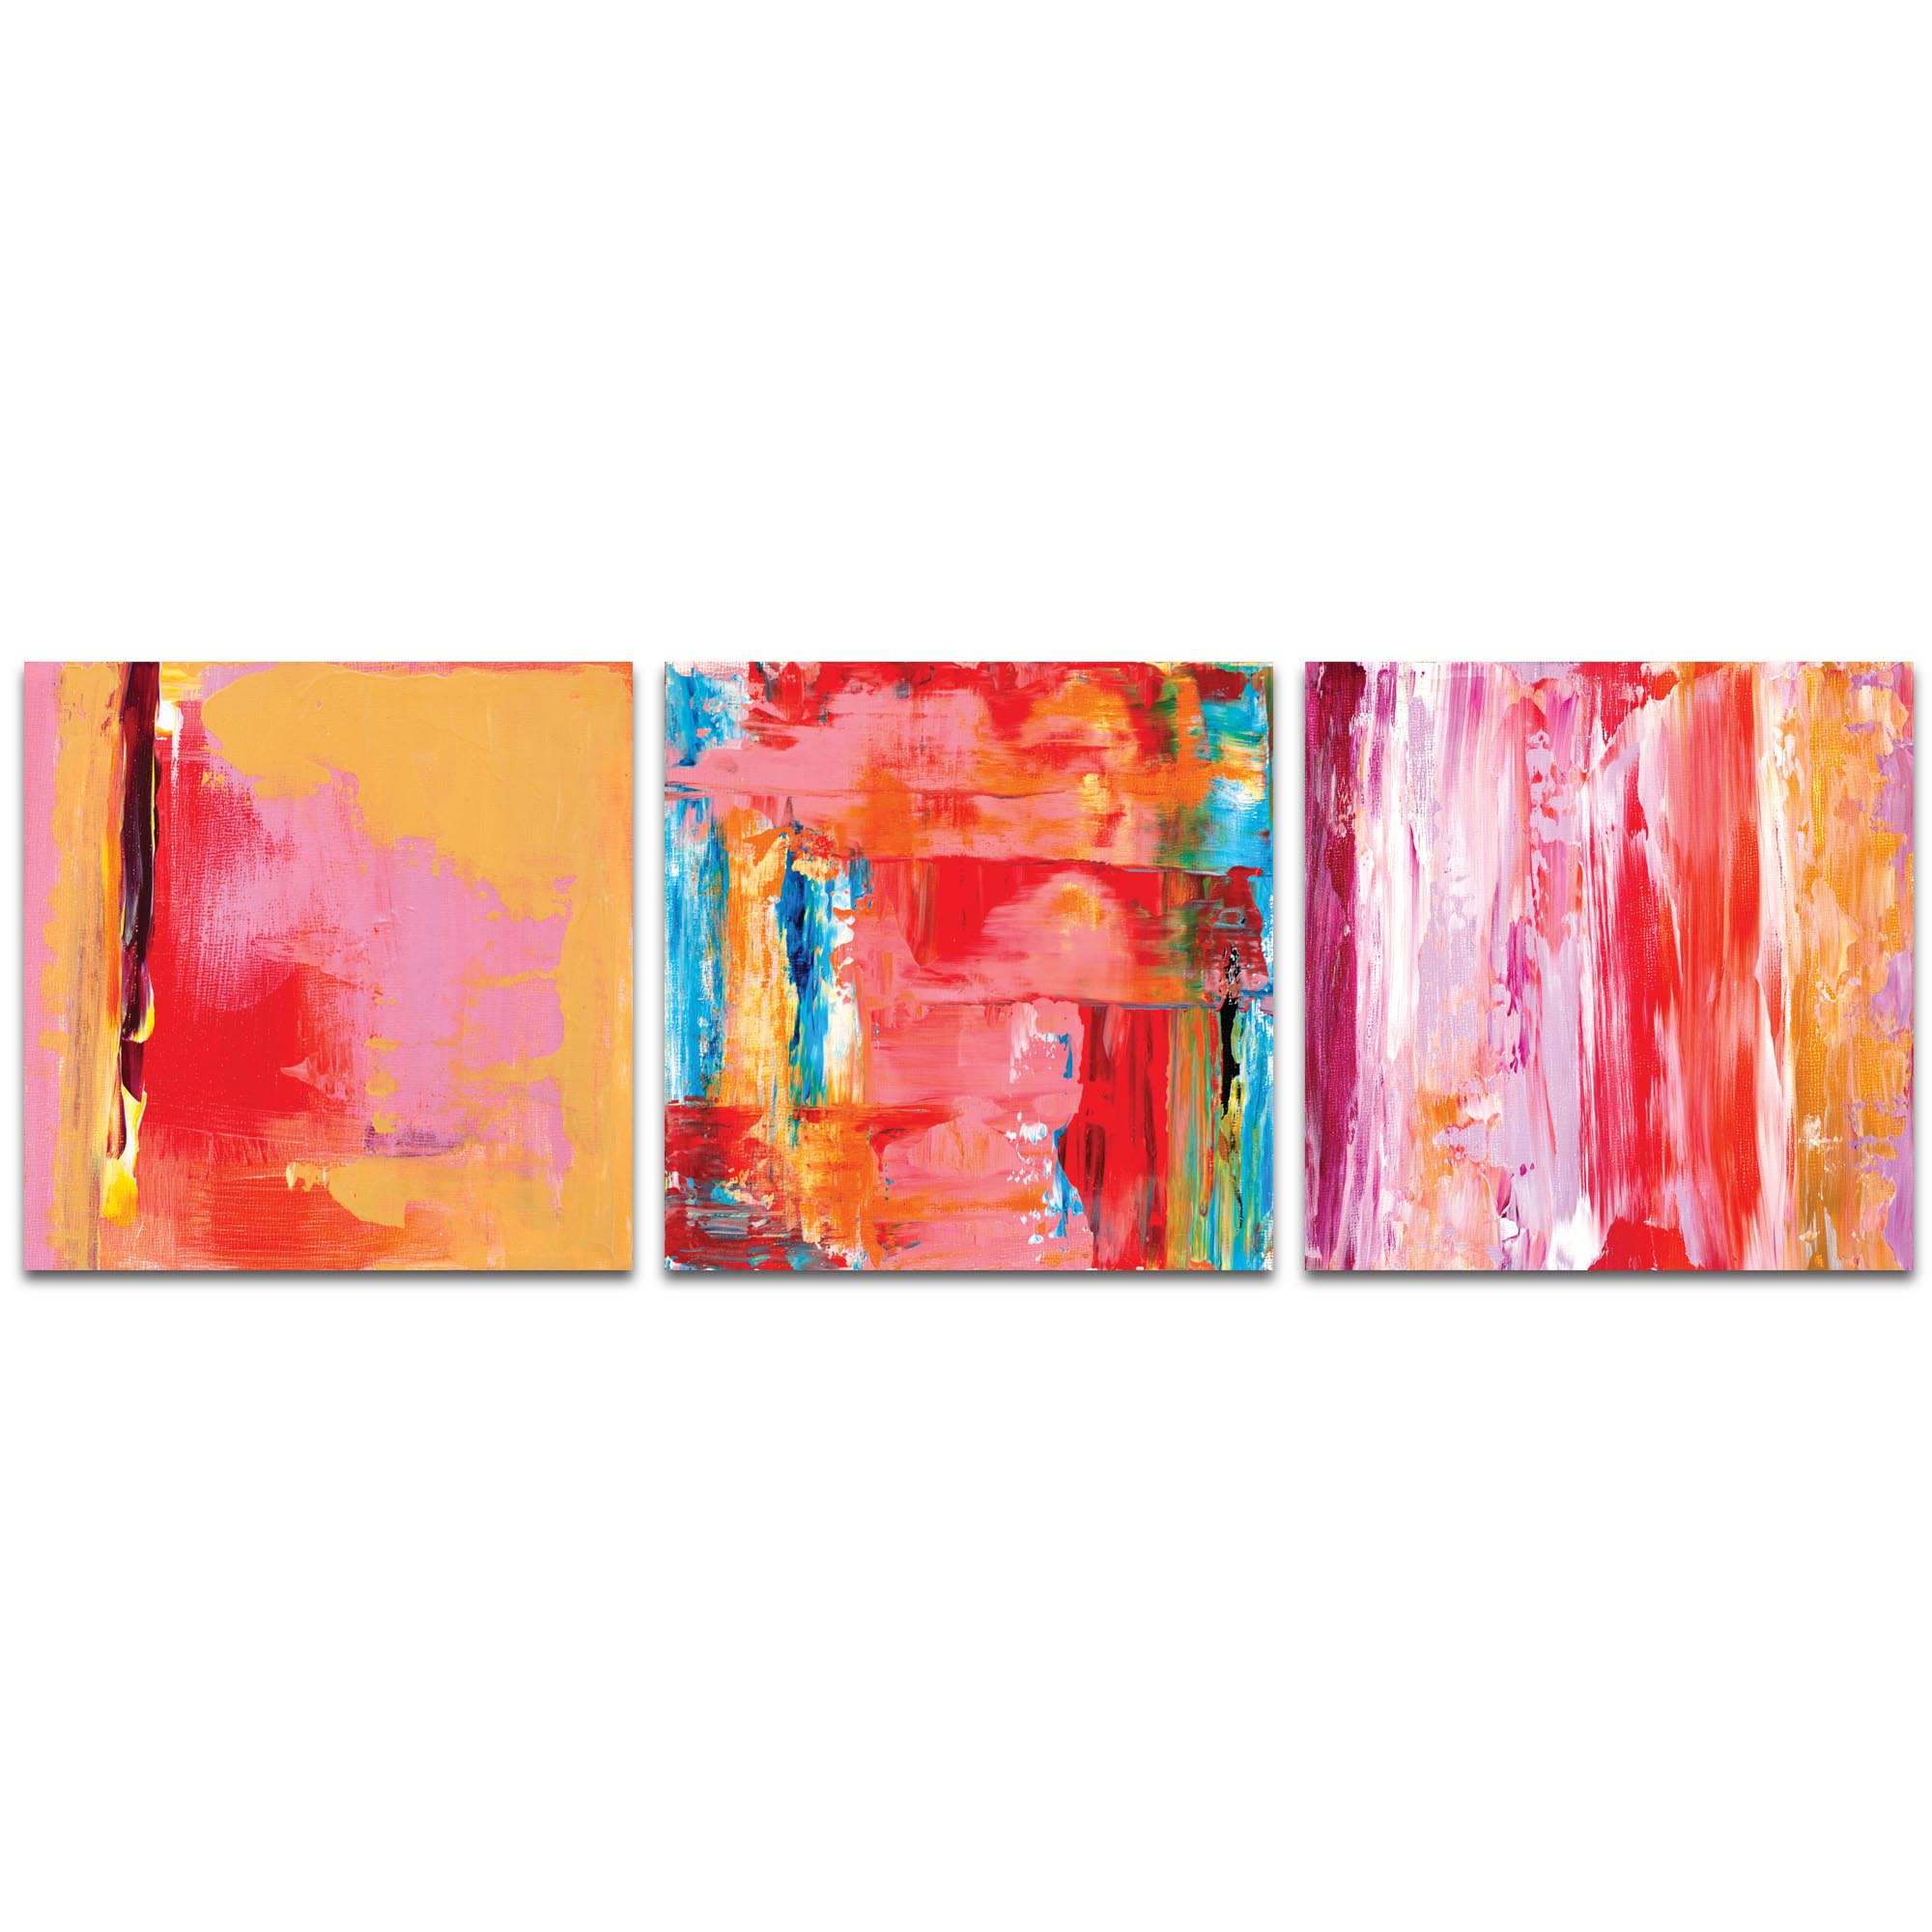 Abstract Wall Art 'Urban Triptych 3 Large' - Urban Decor on Metal or Plexiglass